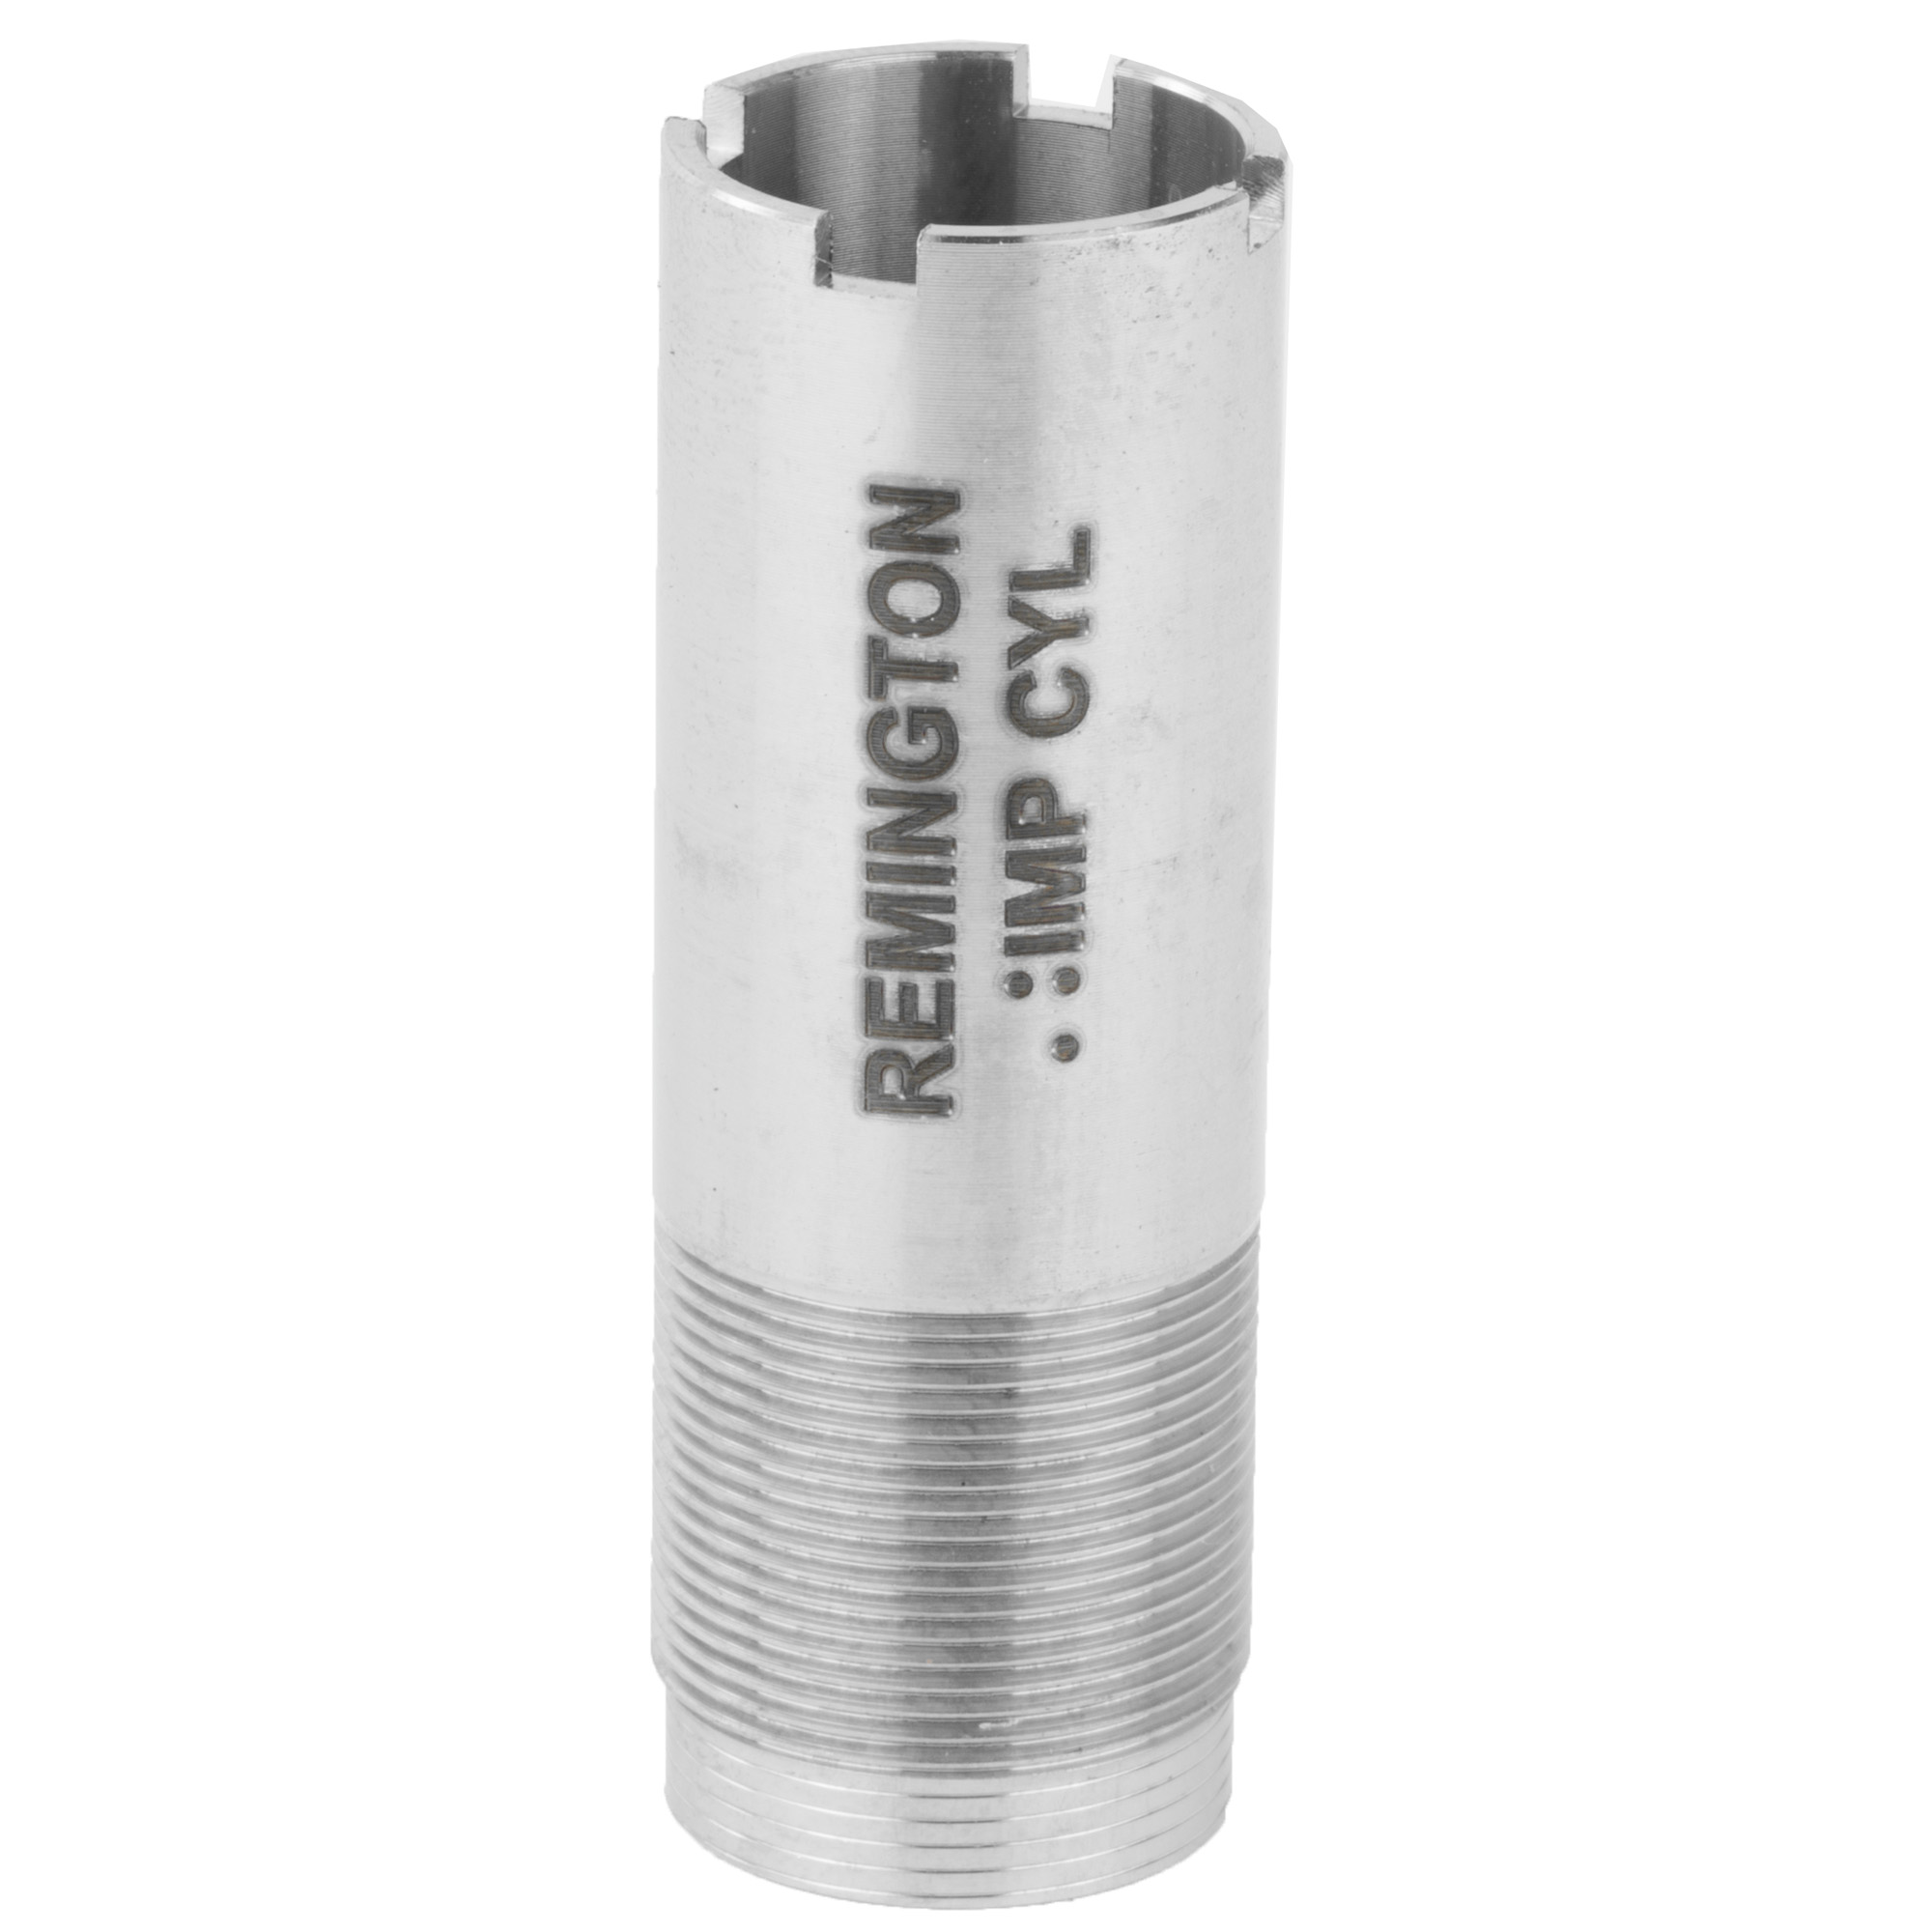 """Rem(TM) Choke 20 Ga. Improved Cylinder Flush"""" Steel or Lead. Genuine Remington Choke Tube. Remington's factory Rem Chokes are a system of interchangeable choke tubes and extended chokes that allow you to quickly and easily change the choke of your shotgun to match specific hunting conditions. Performance tuned for all Remington shotguns in field and target constrictions for optimal pattern performance."""